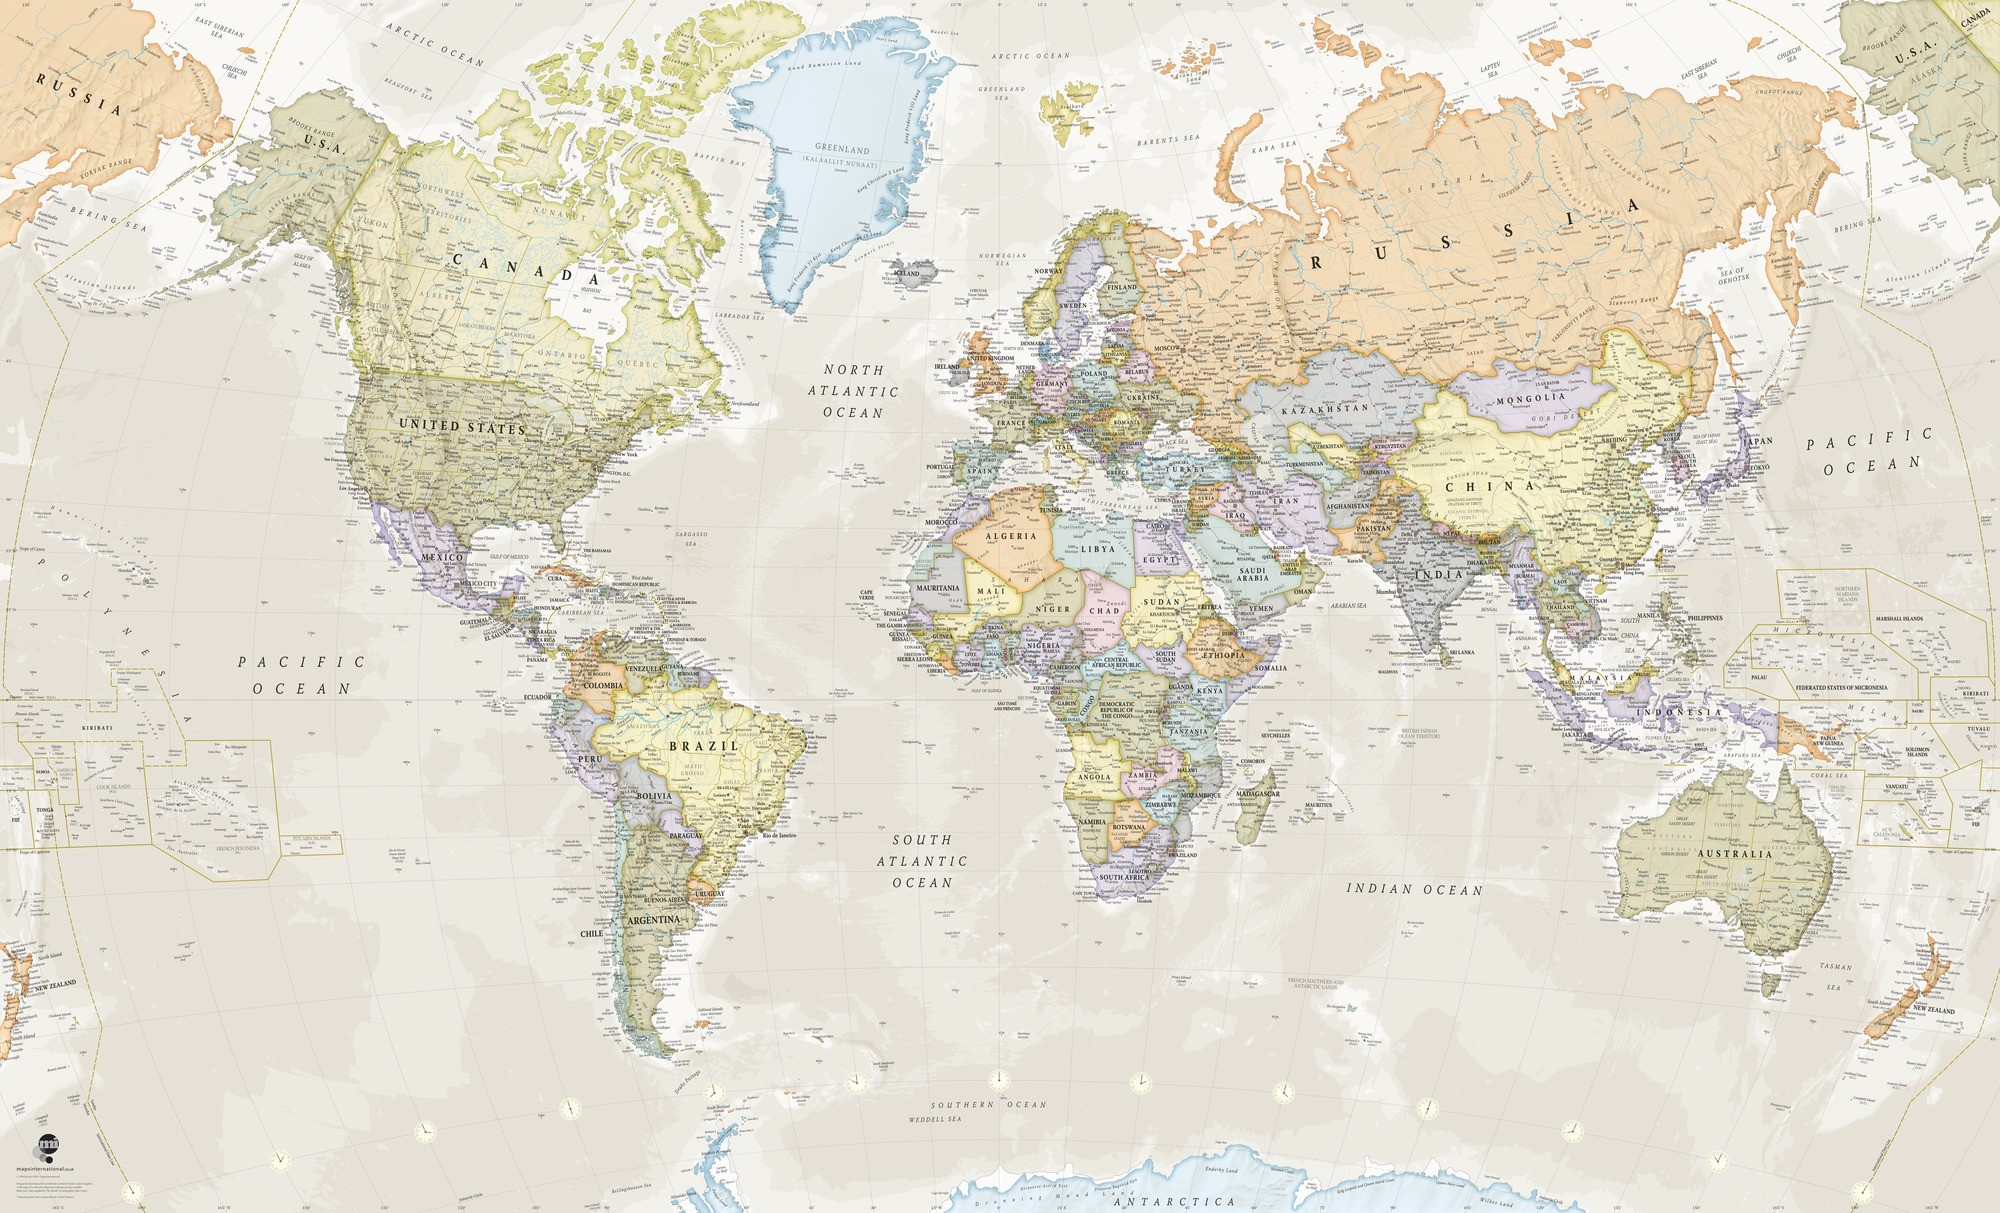 World Map Wallpapers Artsy Wallpapers Pictures Free Download: World Map Wallpaper (64+ Immagini